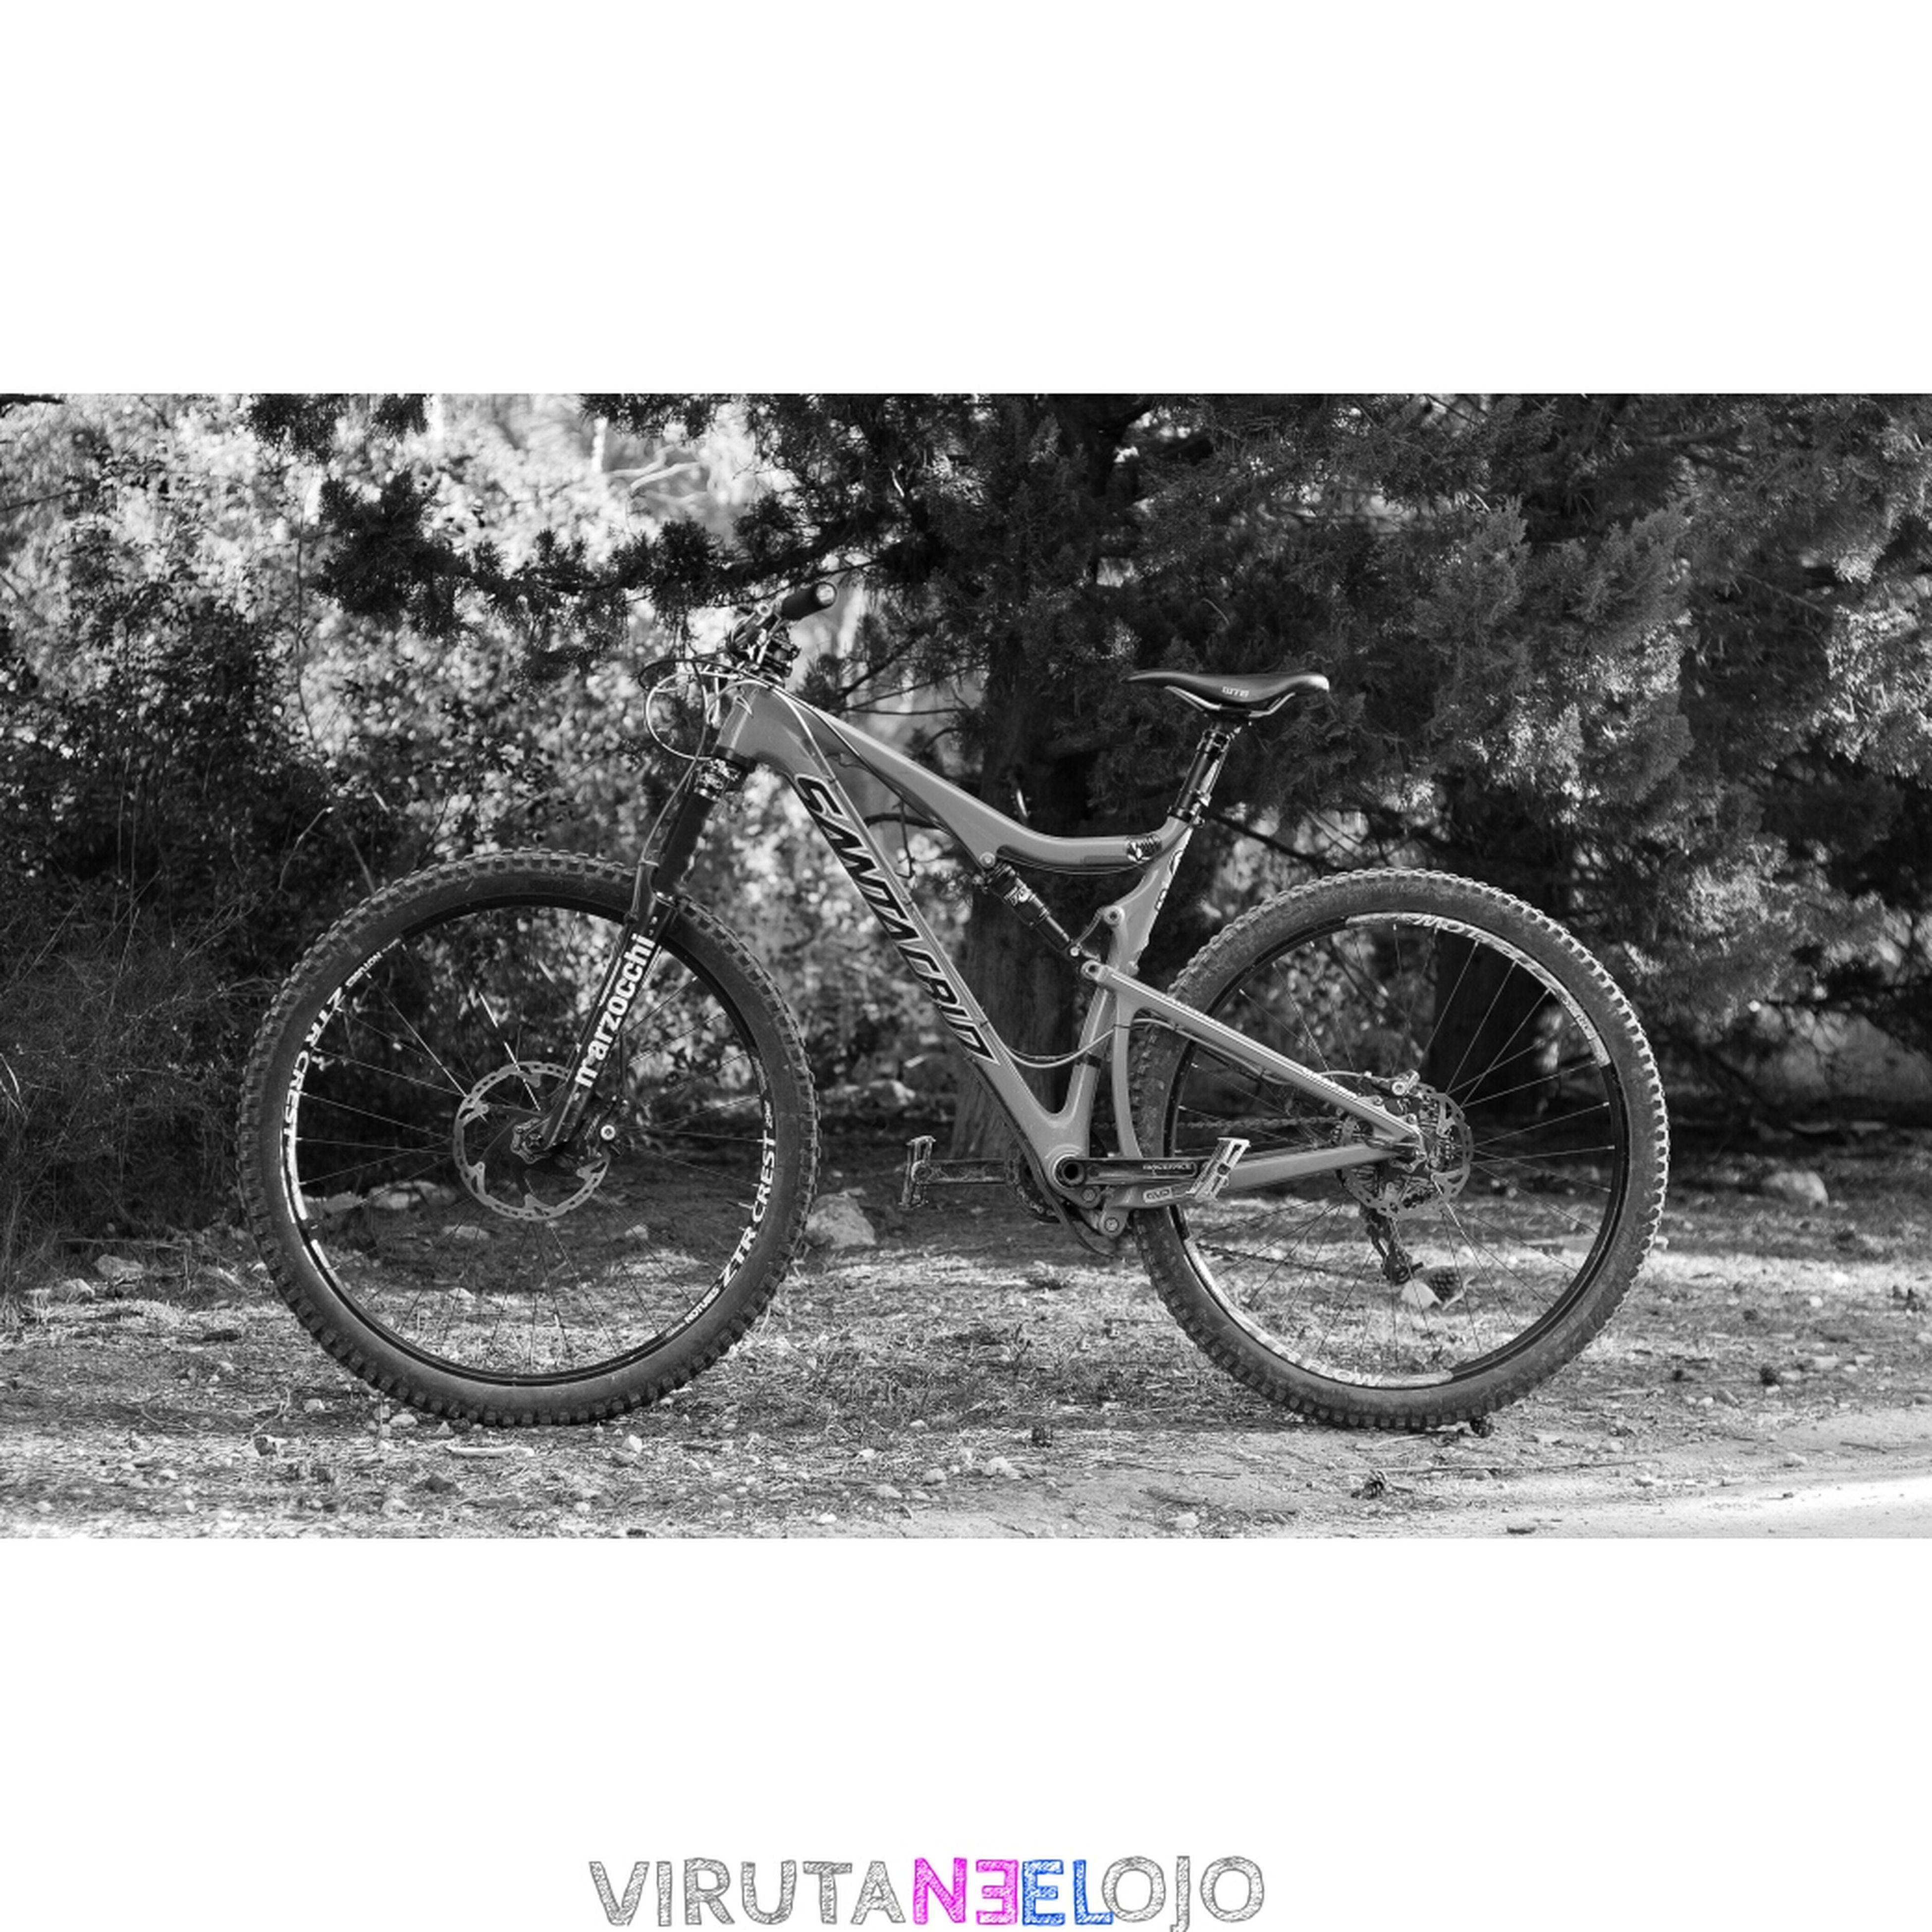 bicycle, transportation, mode of transport, land vehicle, stationary, wheel, wall - building feature, parked, auto post production filter, day, side view, wall, outdoors, leaning, no people, transfer print, cycle, parking, abandoned, old